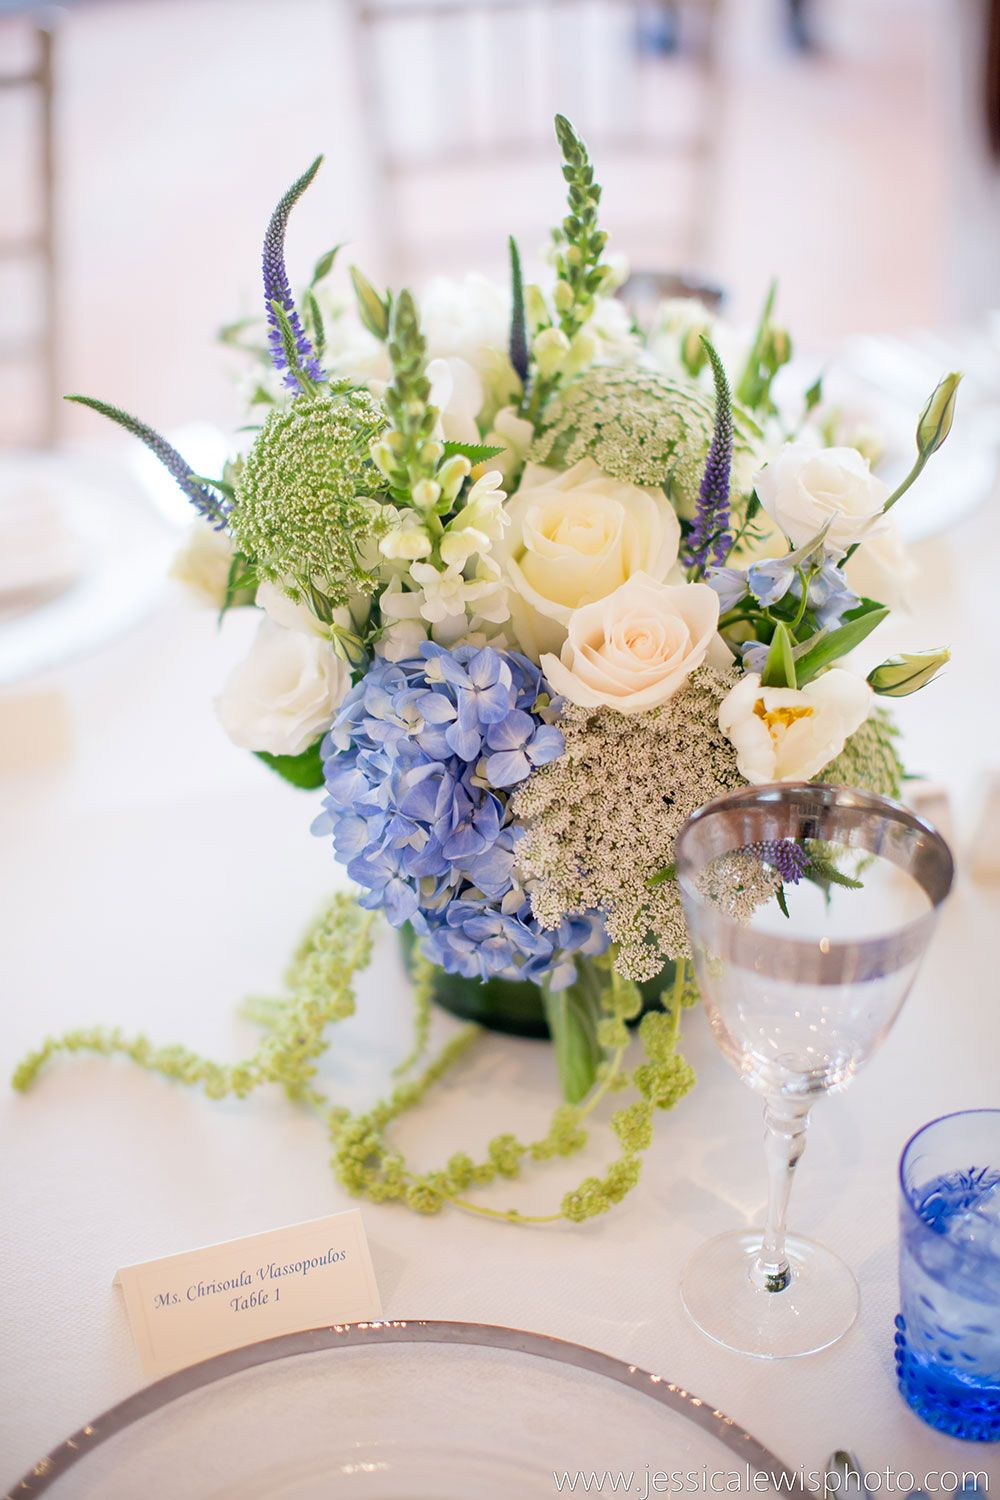 Soft blues and creamy whites. Luxurious hydrangea, Queen Anne's lace, Veronica, ruffled roses along with amaranthus.  Image: Jessica Lewis Photography